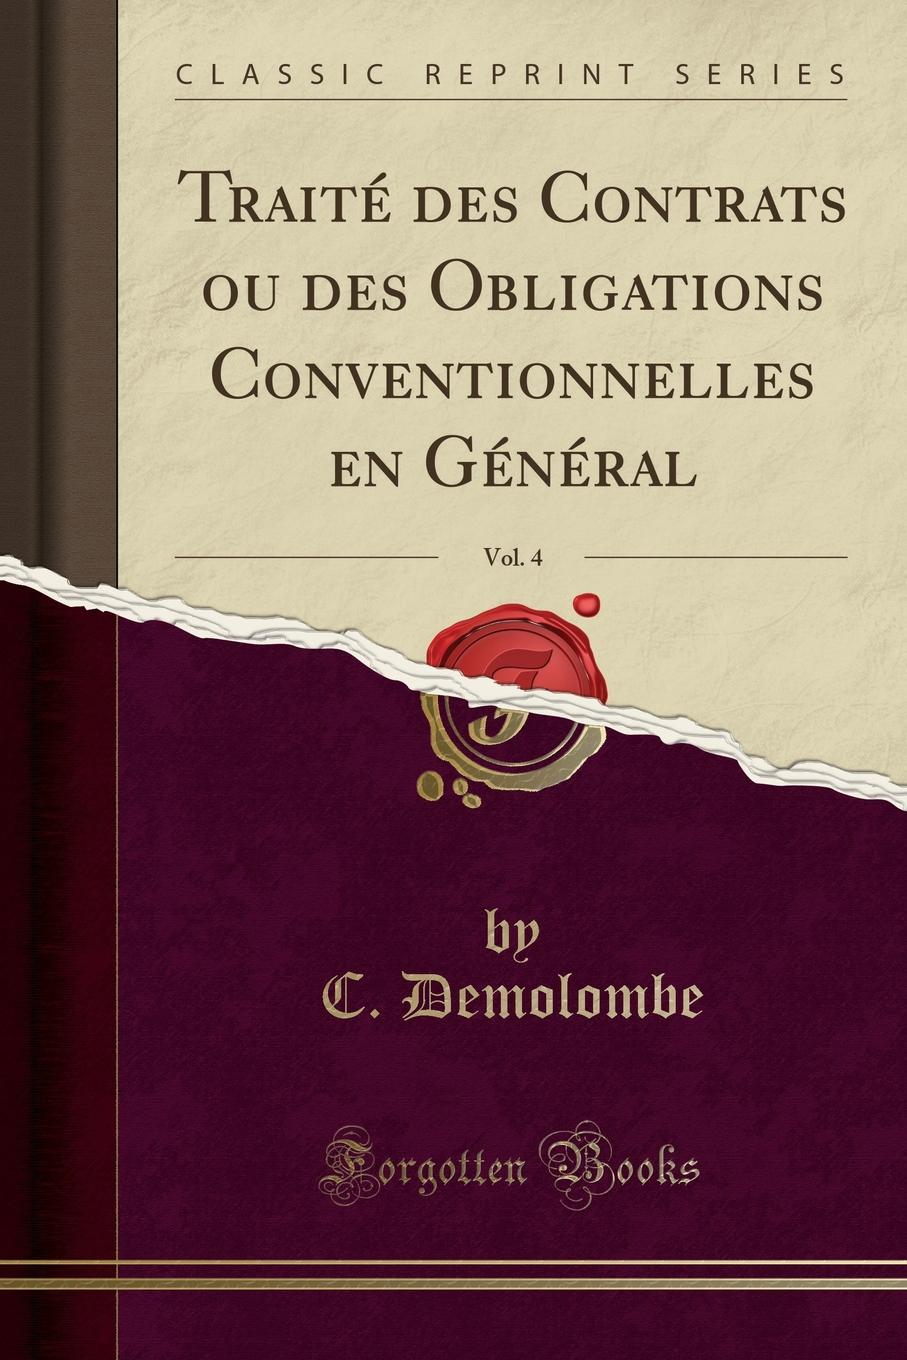 C. Demolombe Traite des Contrats ou des Obligations Conventionnelles en General, Vol. 4 (Classic Reprint) farouk zouari mise en oeuvre de methodes d identification conventionnelles et non conventionnelles